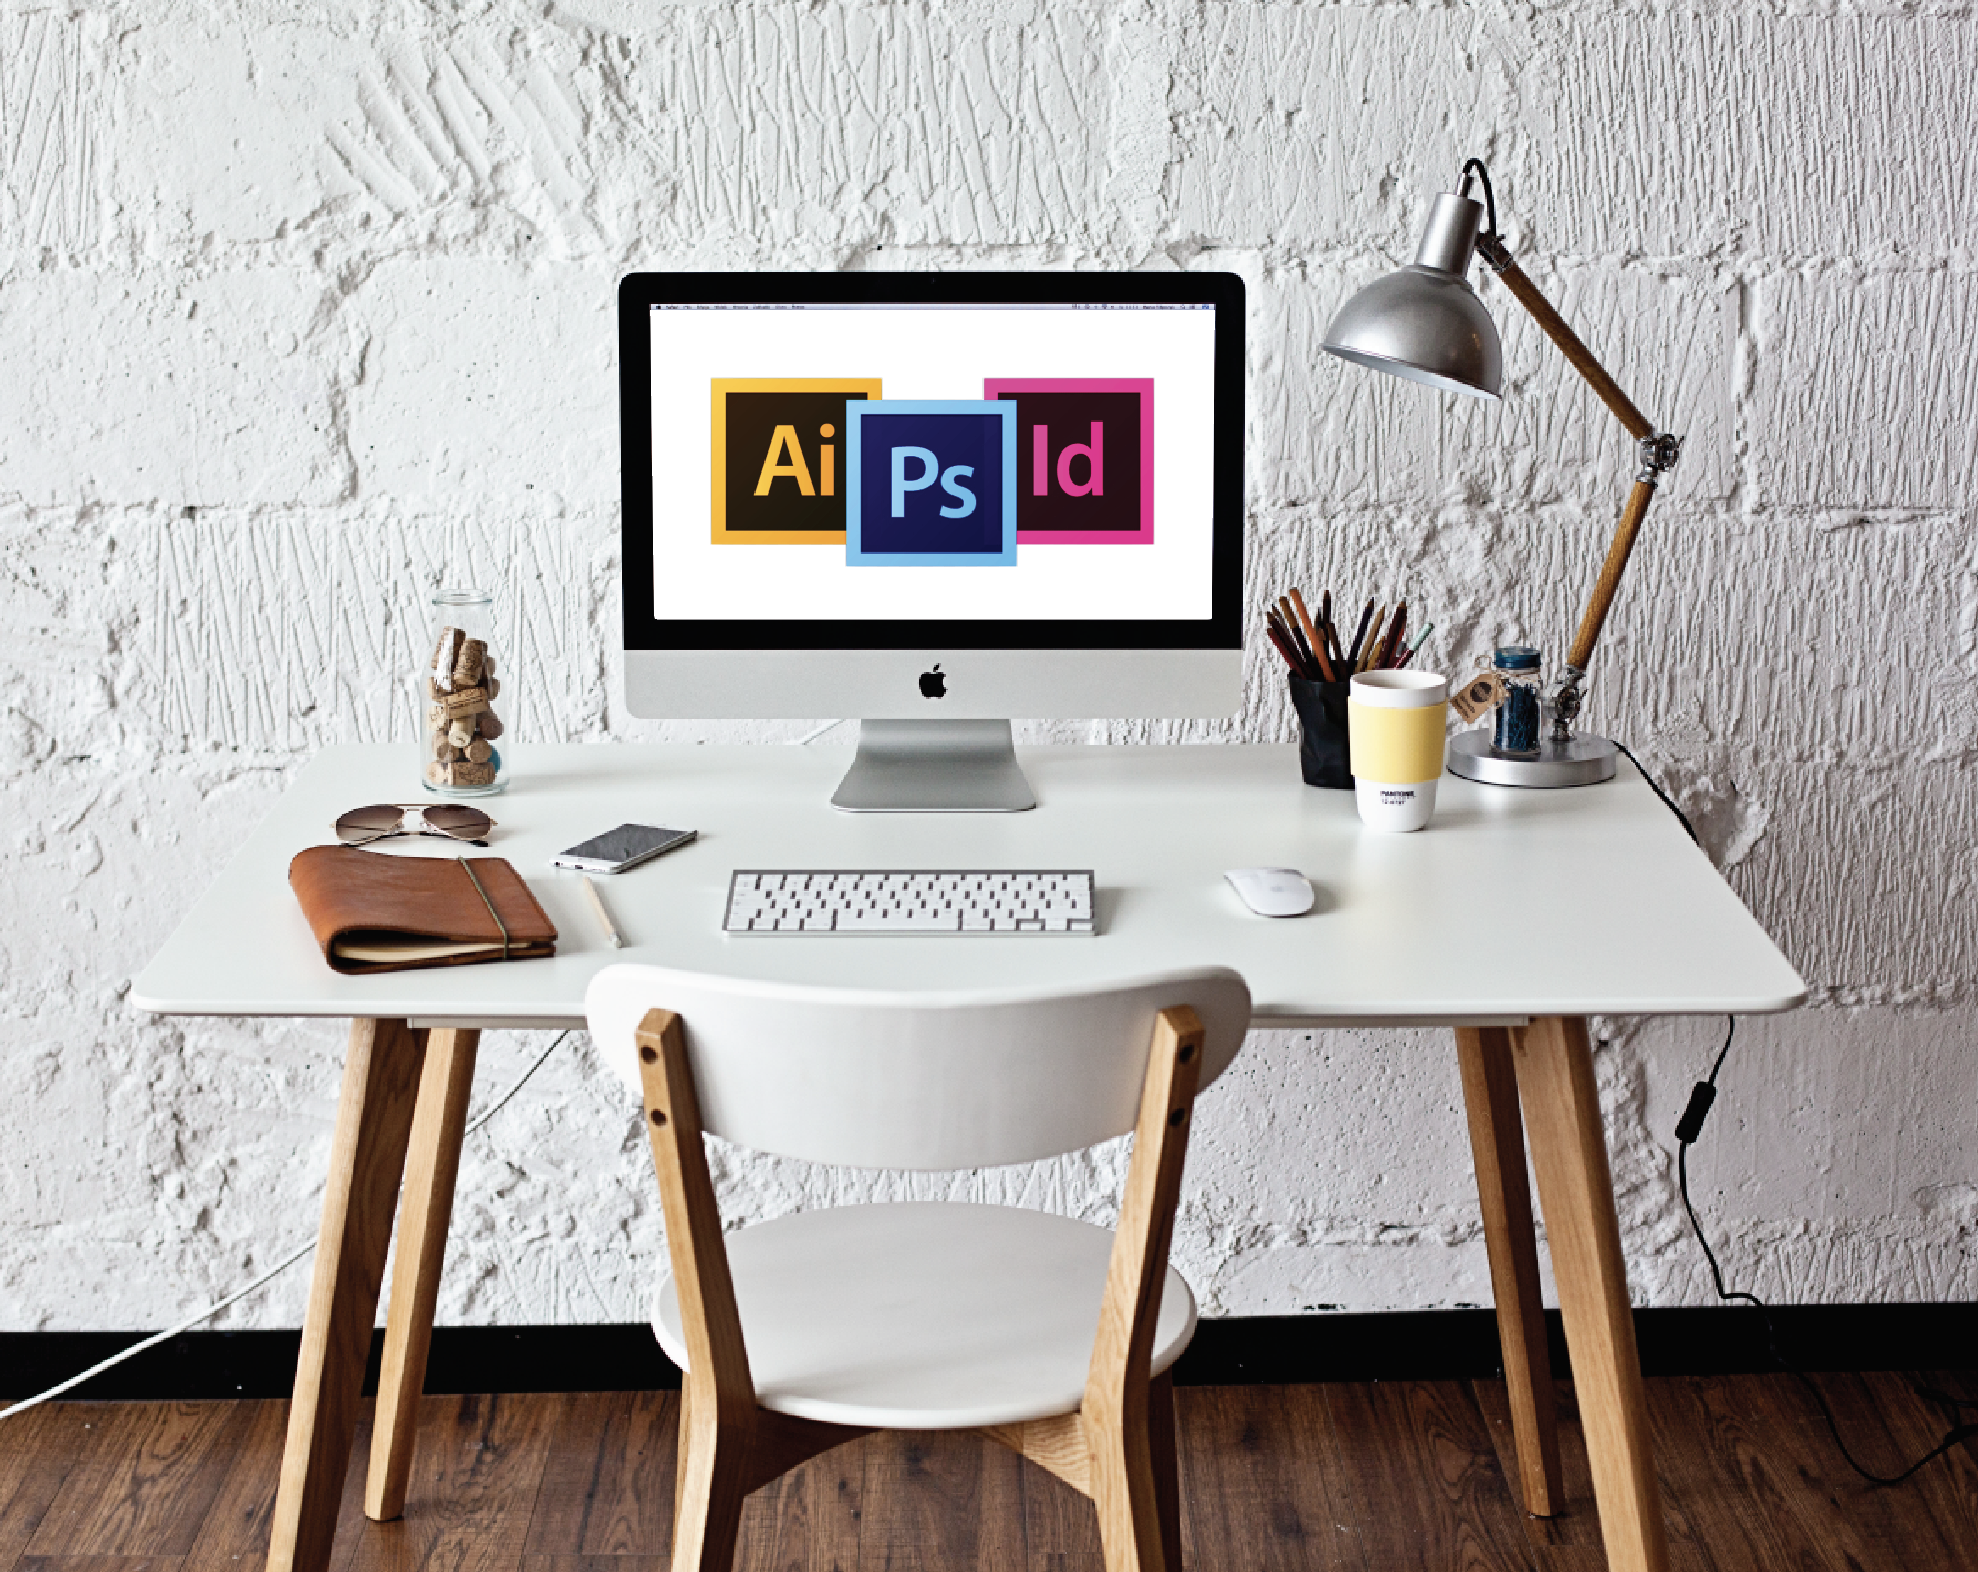 Adobe Photoshop, Illustrator & Indesign - R6490,00 per course10% discount IF you Do all three courses